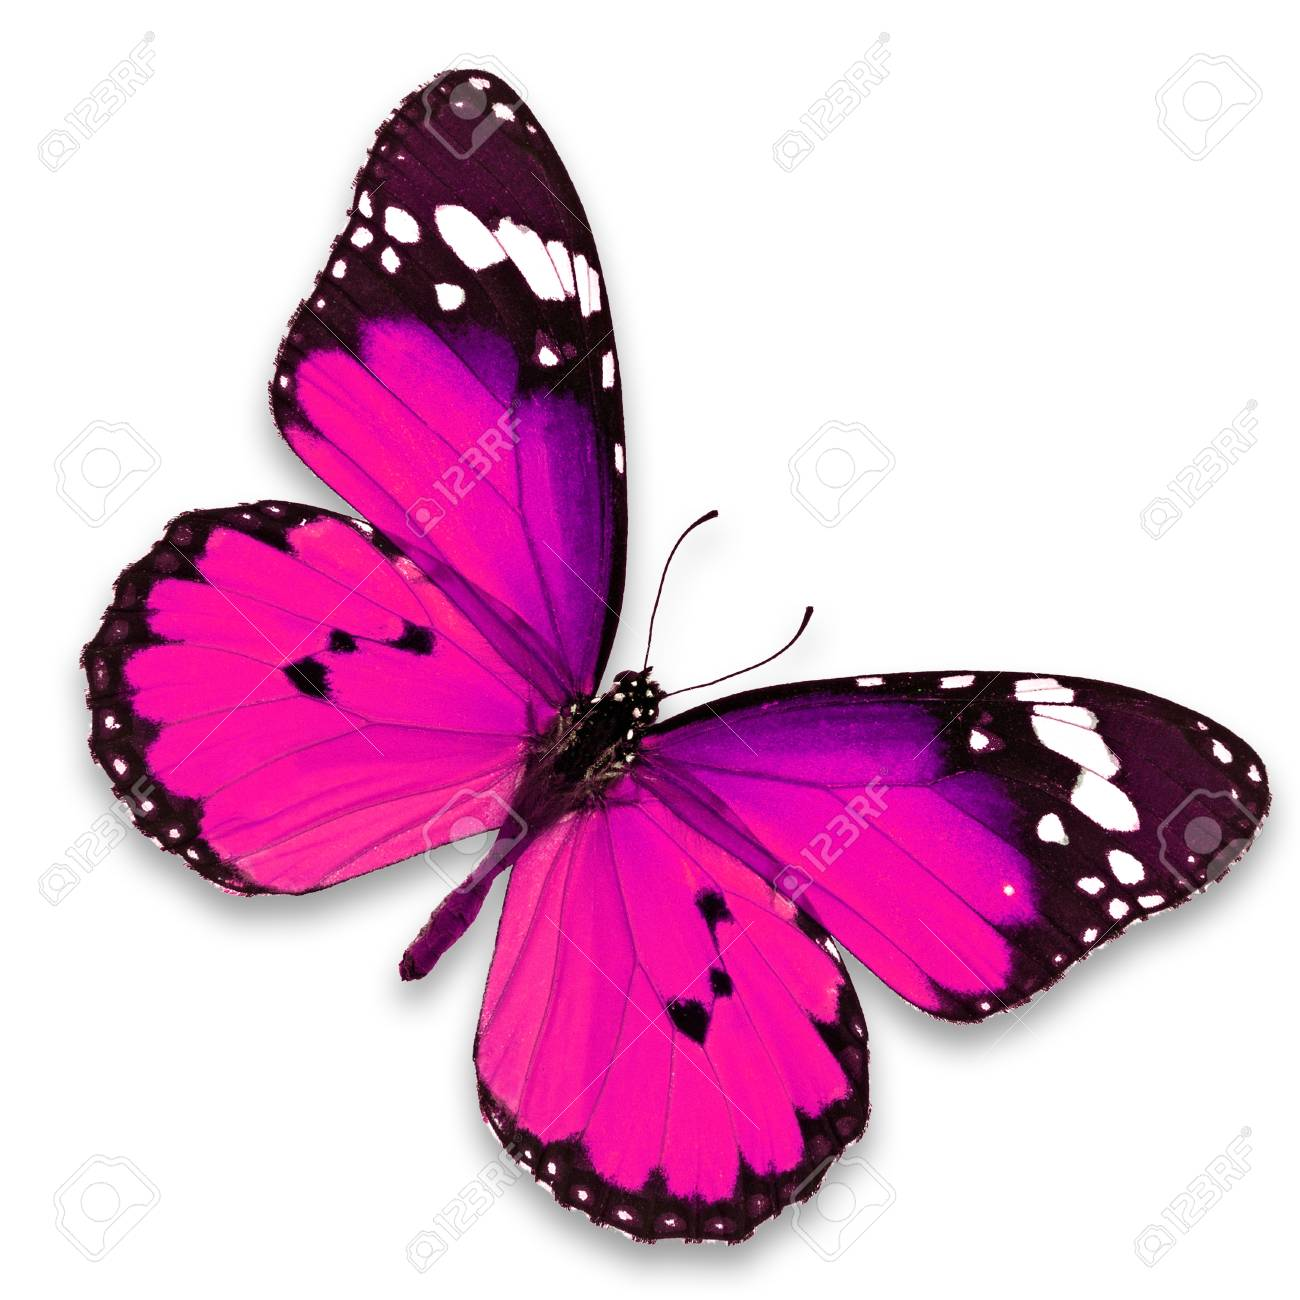 Beautiful pink butterfly isolated on white background - 33647254